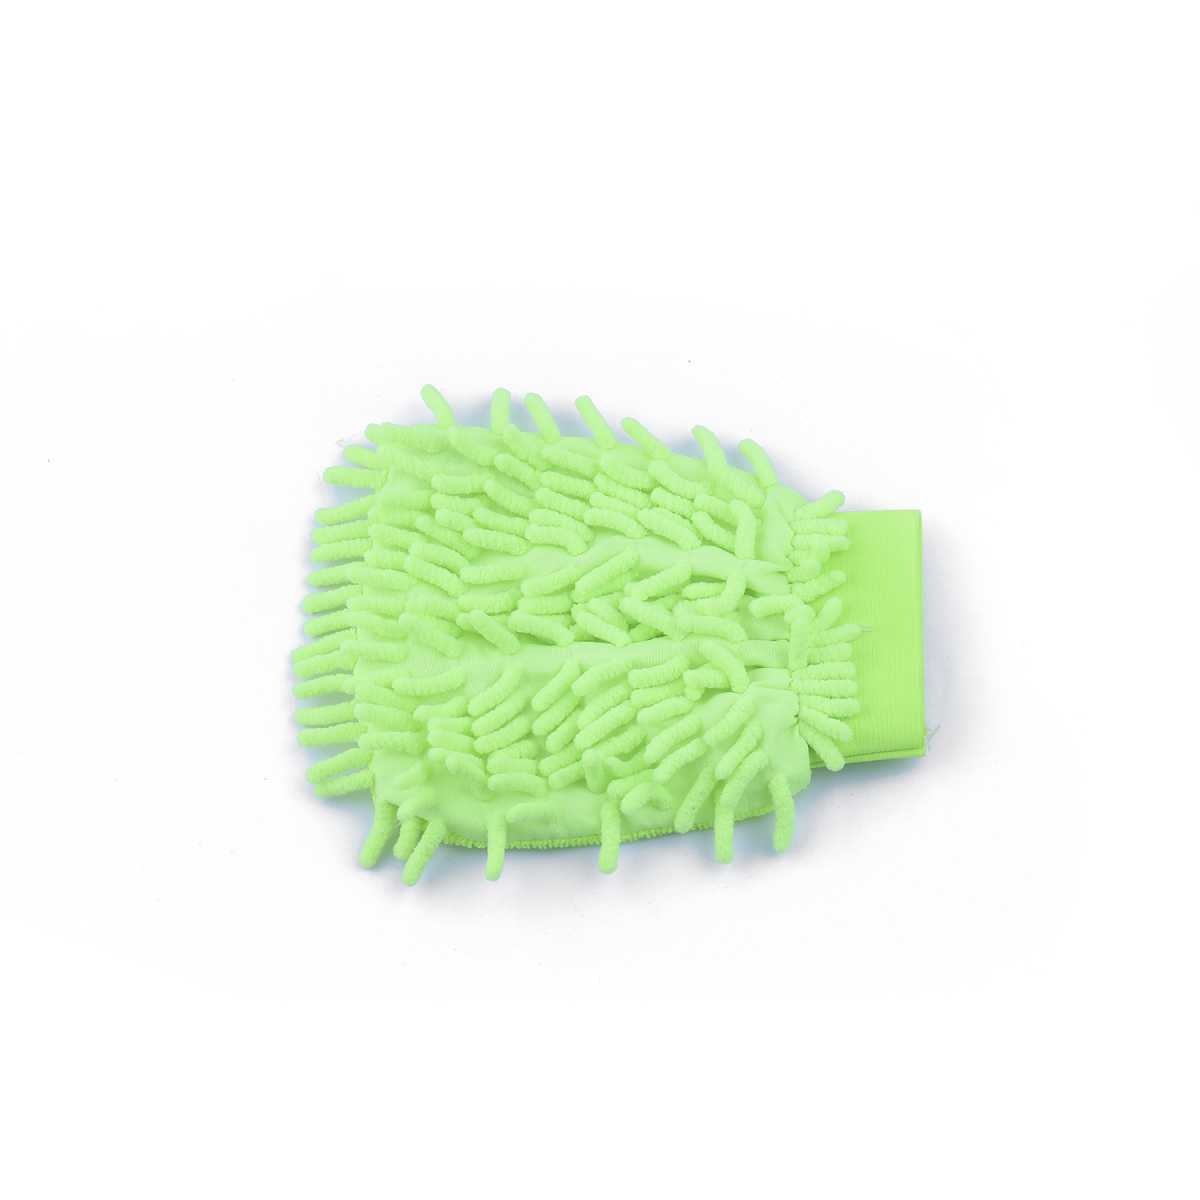 Silver Shine Microfiber Chenille & Glass Cloth Mitt, 1 Piece Multi-Purpose Super Absorbent and Perfect Wash Clean with Lint-Scratch Free Home, Kitchen, Window,(Assorted Color)